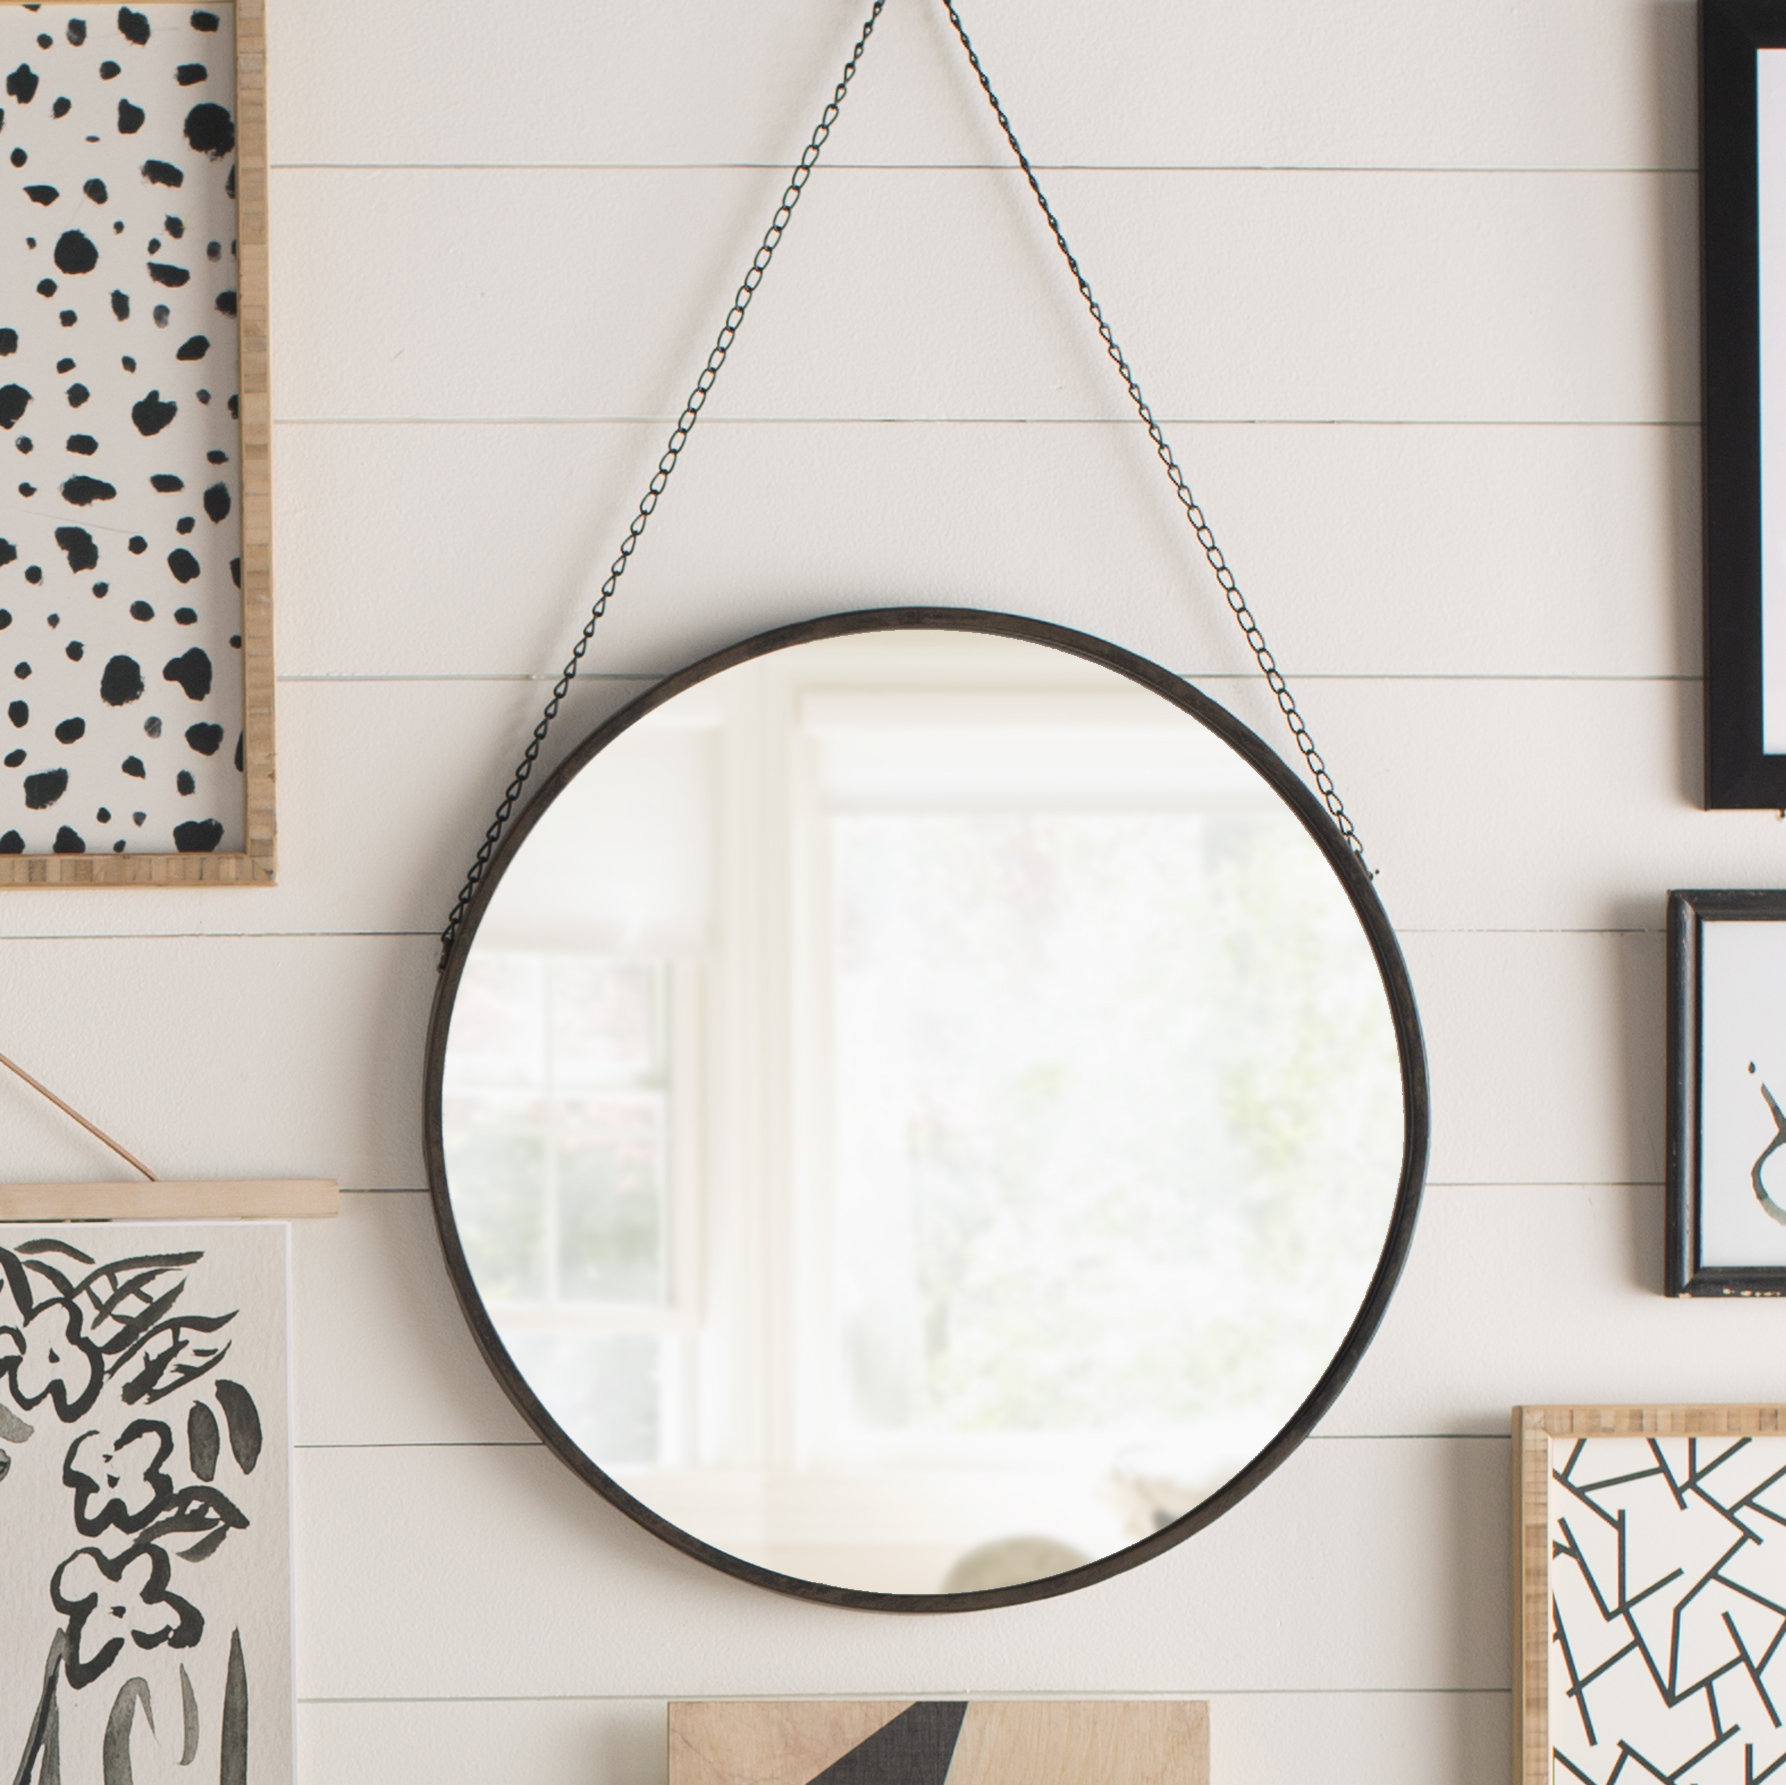 Hardison With Chain Hanger Accent Mirror With Regard To Swagger Accent Wall Mirrors (View 10 of 20)